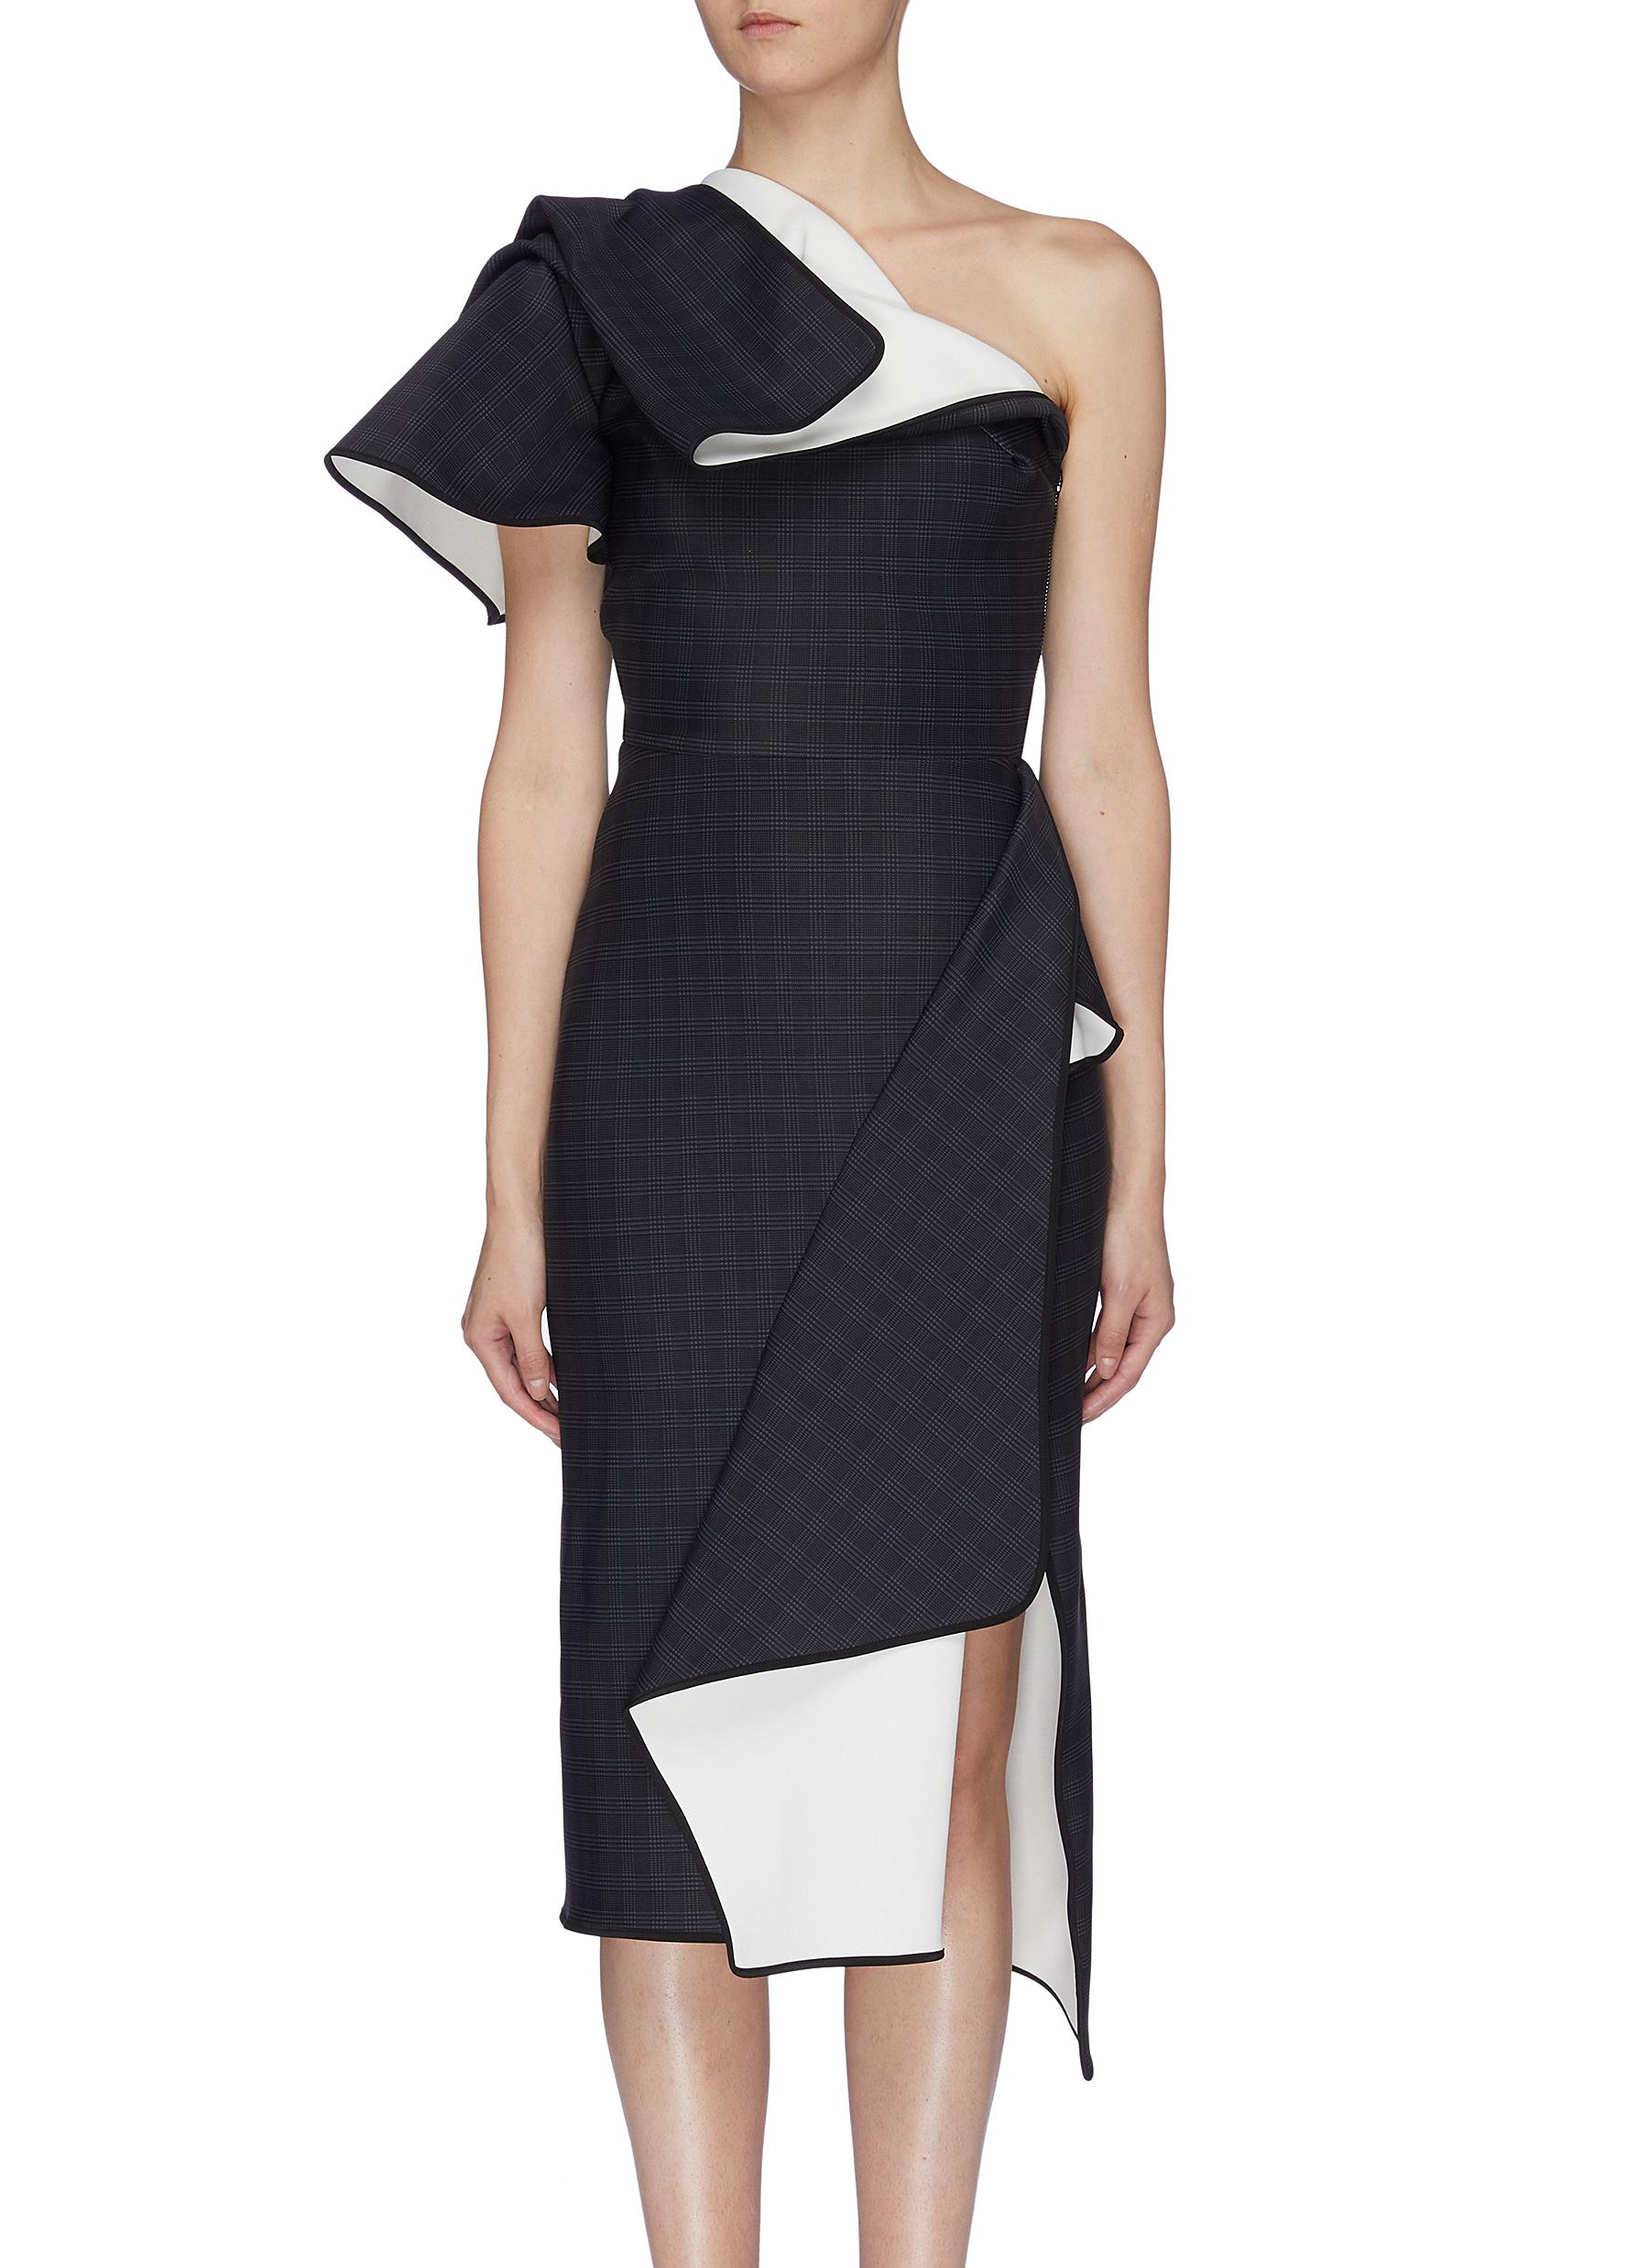 Aquatic houndstooth check folded panel one shoulder dress by Maticevski